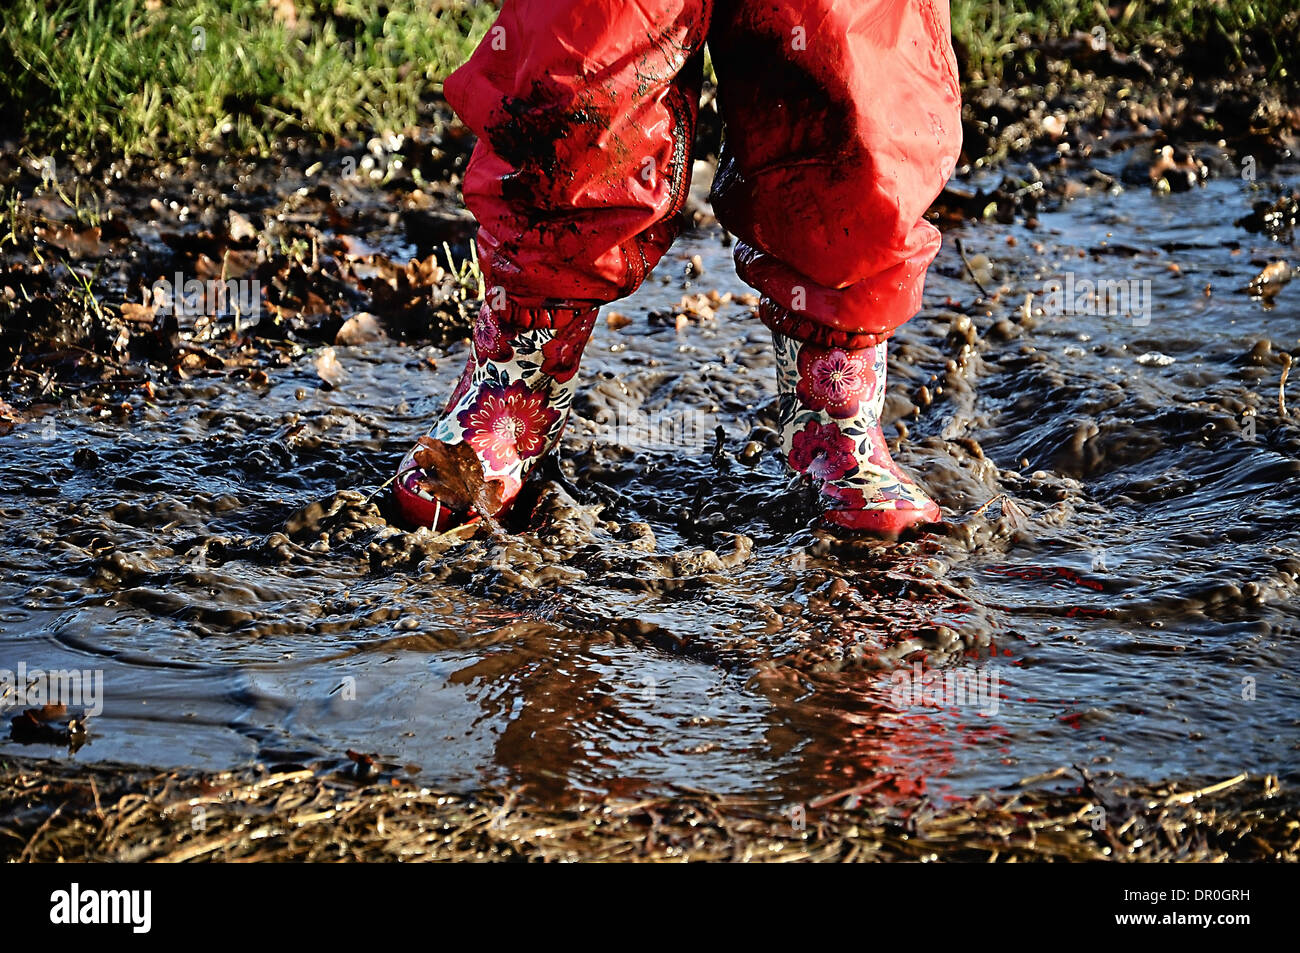 Child in wellington boots splashing in a puddle - Stock Image